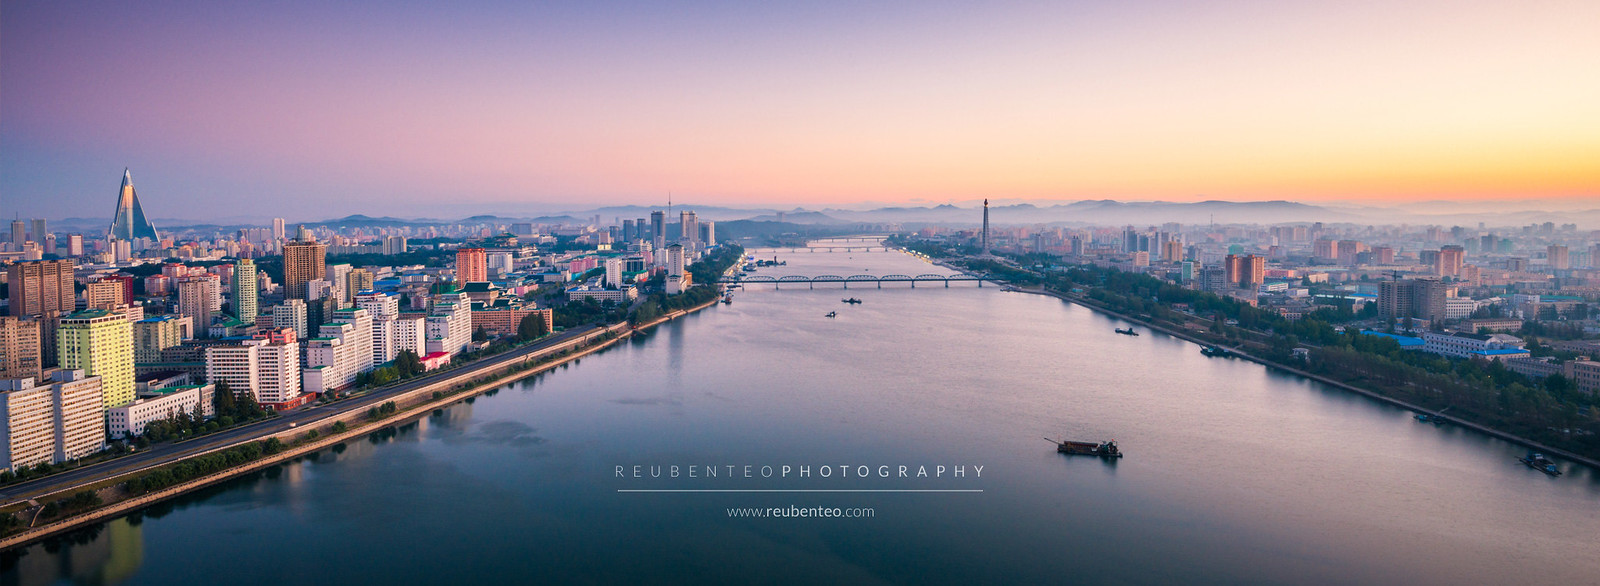 Sunrise view of Pyongyang City